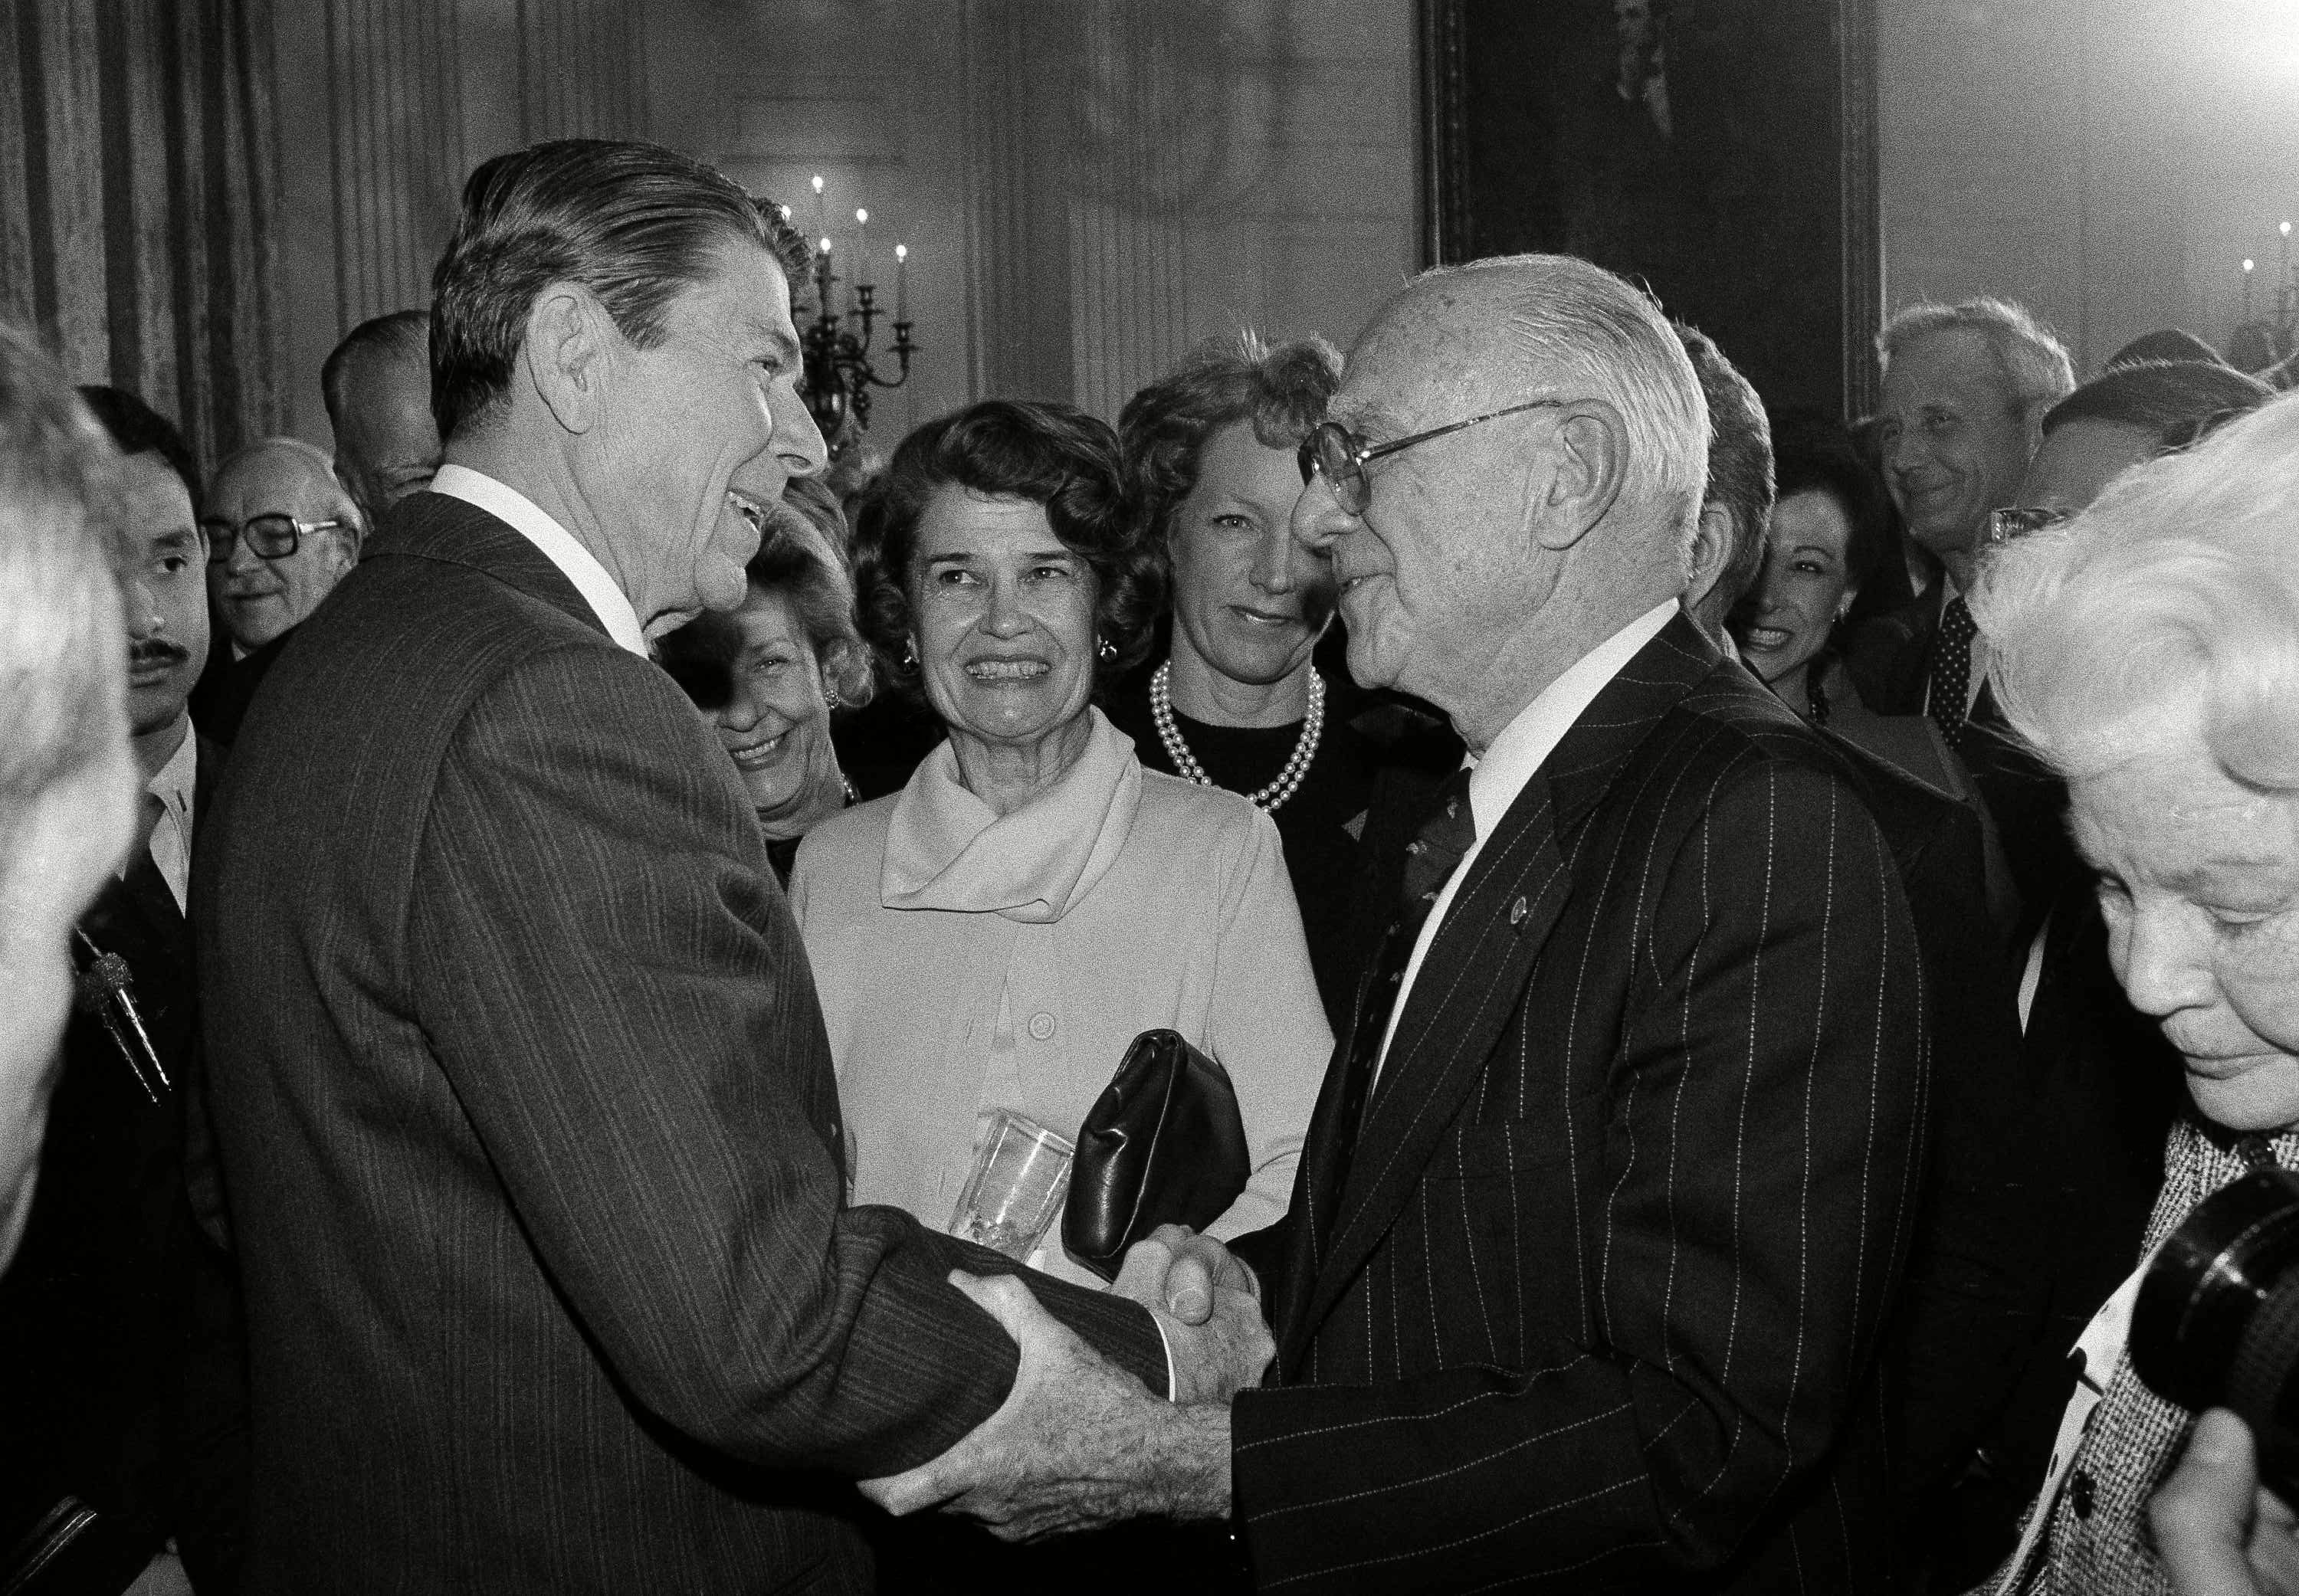 Mandatory Credit: Photo by Ira Schwarz/AP/Shutterstock (6010143a) President Reagan shakes hands with Sonny Werblin, owner of the New York Jets football franchise at the conclusion of a White House reception in Washington, on for the President's Council on Physical Fitness Thursday in the State Dining room Ronald Reagan, Washington, USA